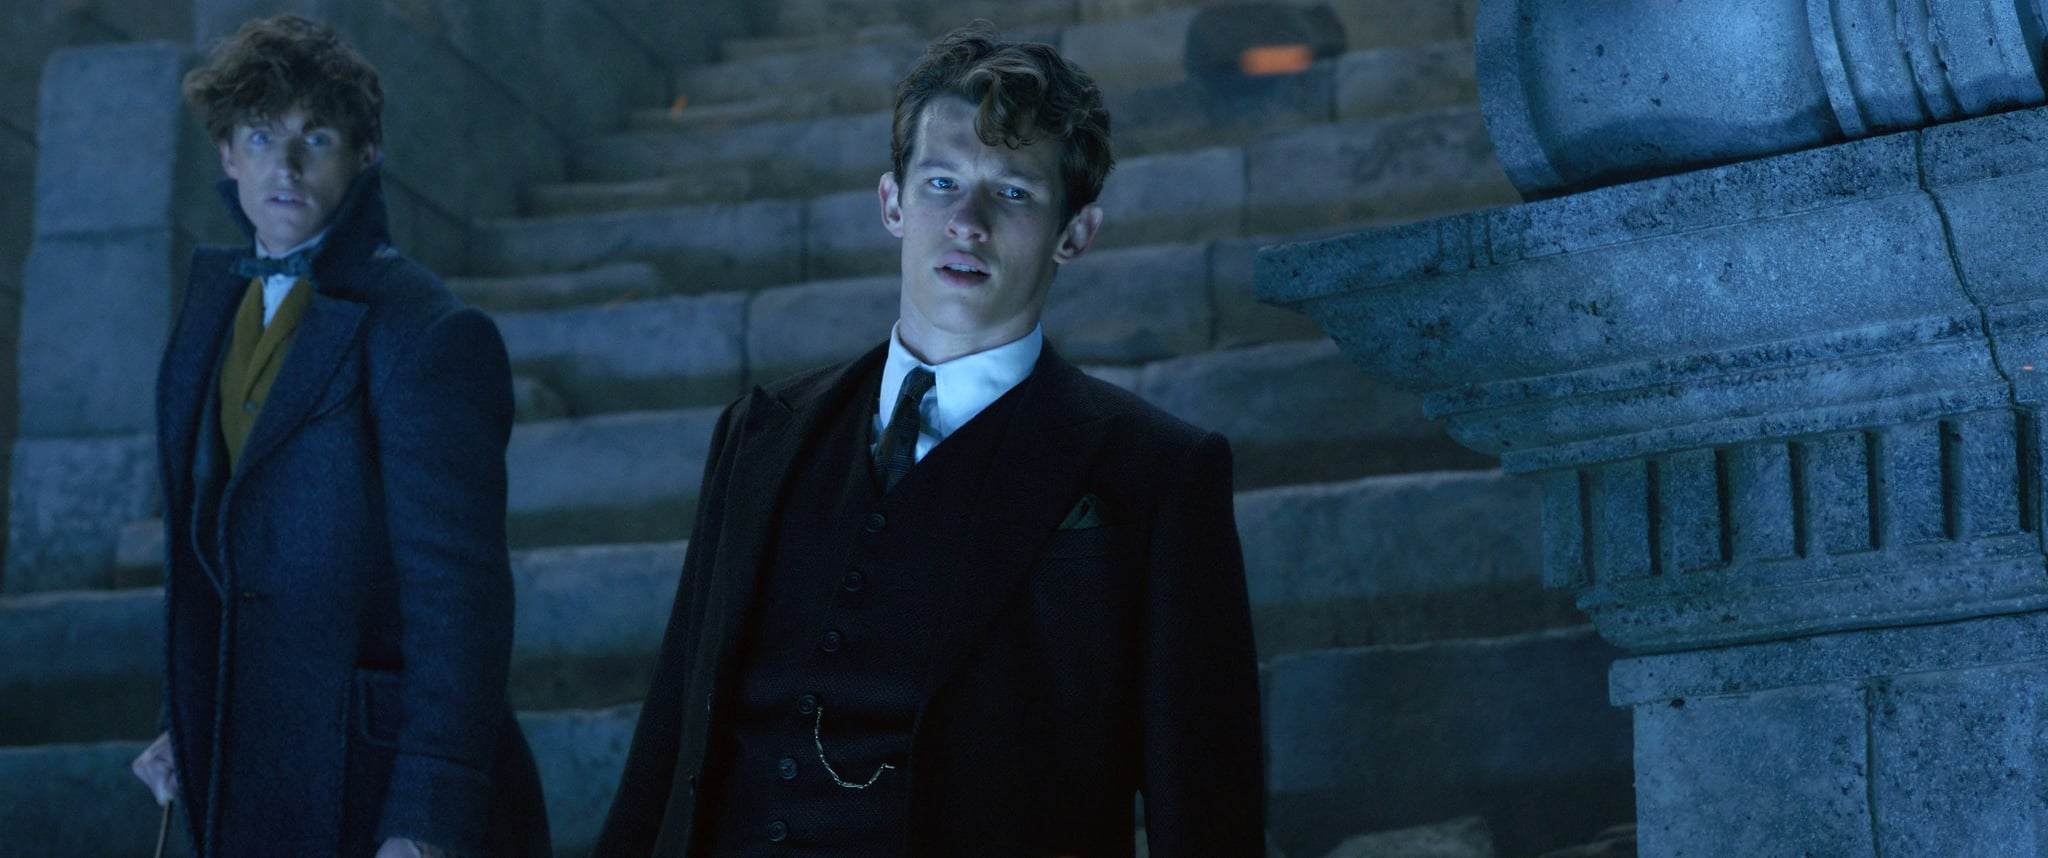 FANTASTIC BEASTS: THE CRIMES OF GRINDELWALD, from left: Eddie Redmayne, Callum Turner, 2018.  2018 Warner Bros. Ent.  All Rights Reserved.Wizarding WorldTM Publishing Rights  J.K. Rowling WIZARDING WORLD and all related characters and elements are trademarks of and  Warner Bros. Entertainment Inc. /Courtesy Everett Collection